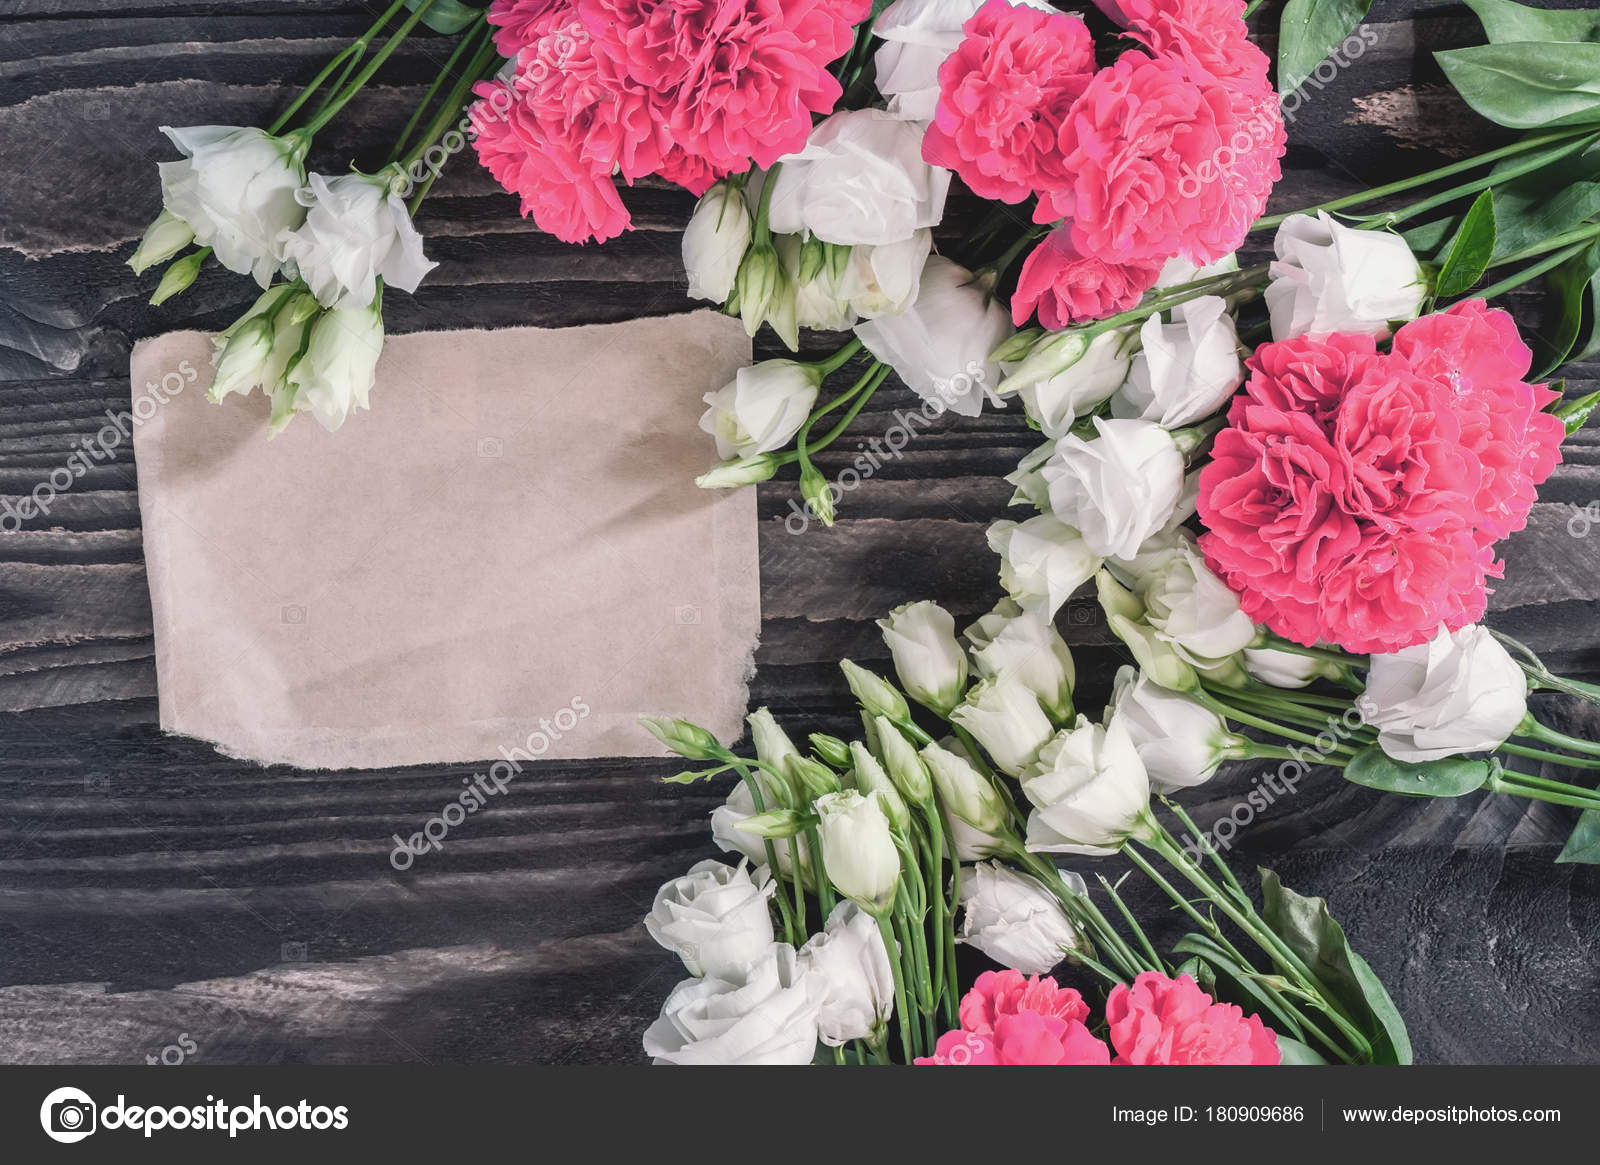 Beautiful Background Of Red And Pink Roses And White Eustoma Flowers